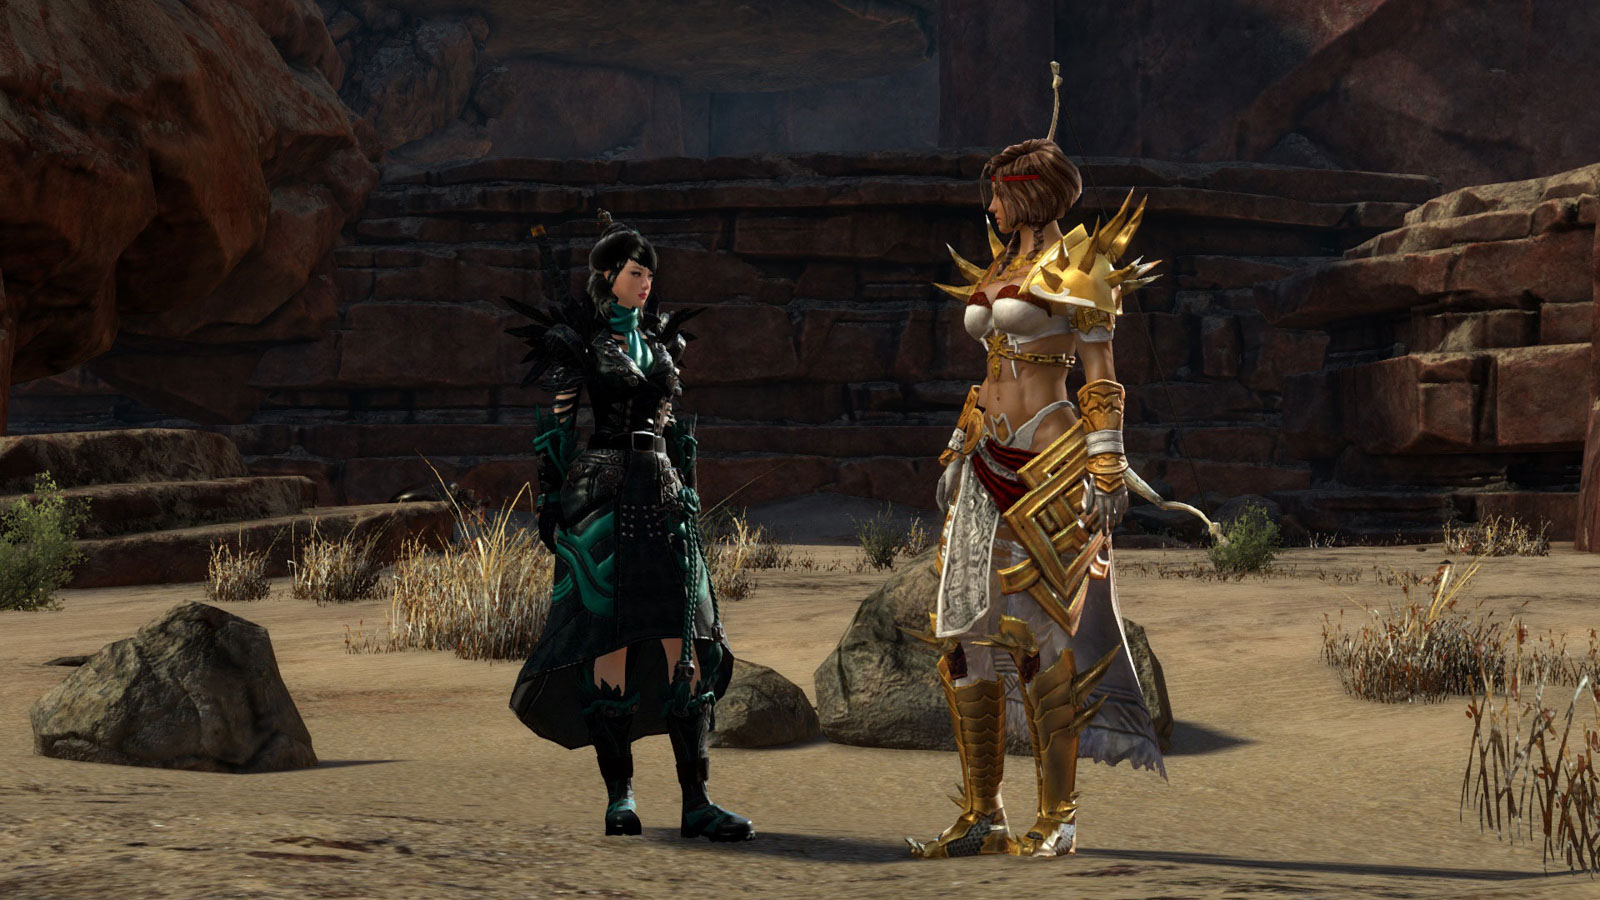 Guild wars 2 builds